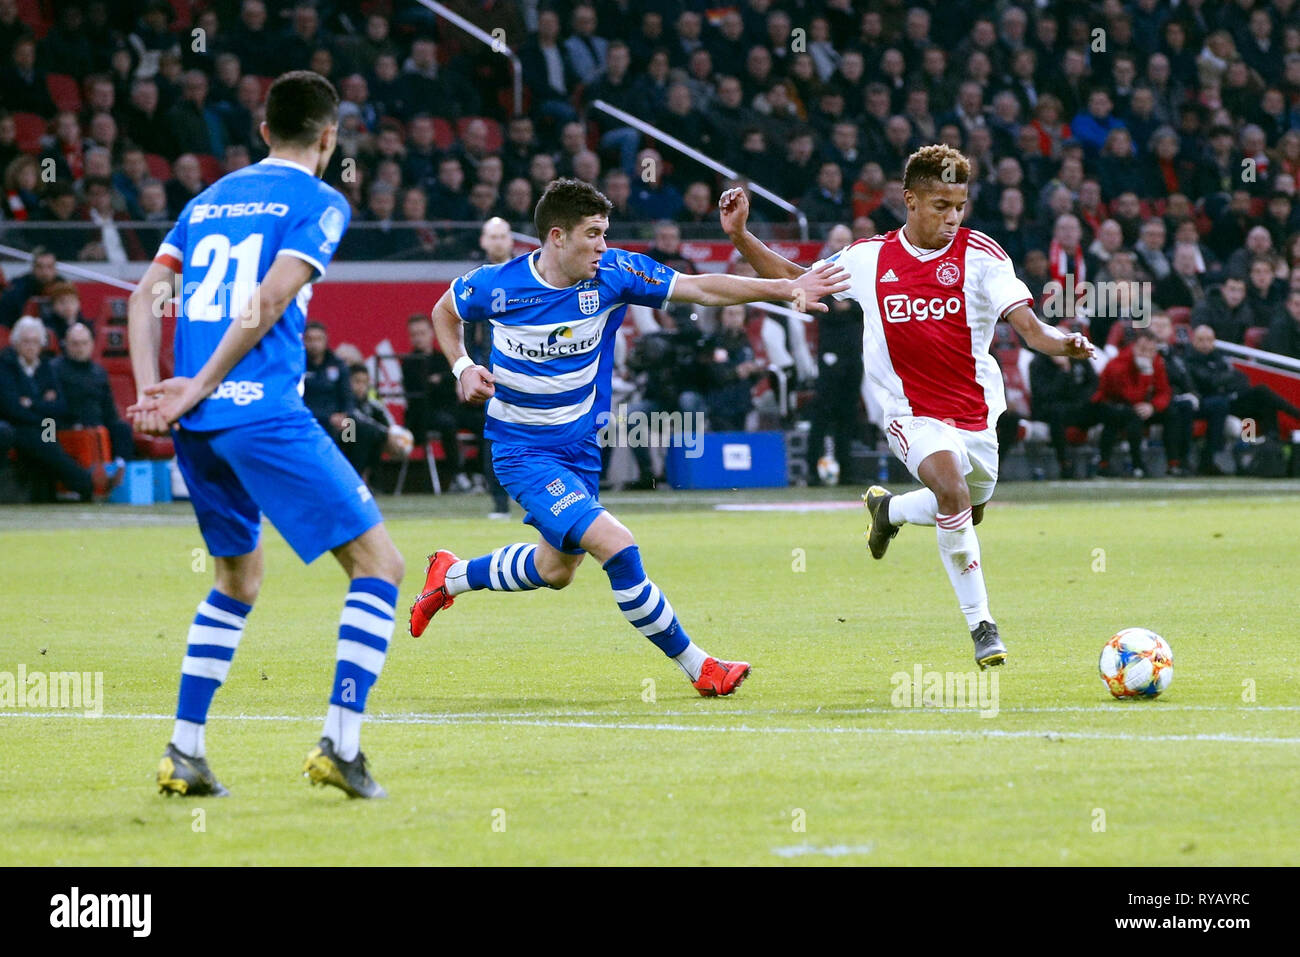 Amsterdam Ajax Pec Zwolle 13 03 2019 Football Dutch Eredivisie Season 2018 2019 Stadium De Arena Ajax Player David Neres R And Pec Zwolle Player Pelle Clement L During The Game Ajax Pec Stock Photo Alamy